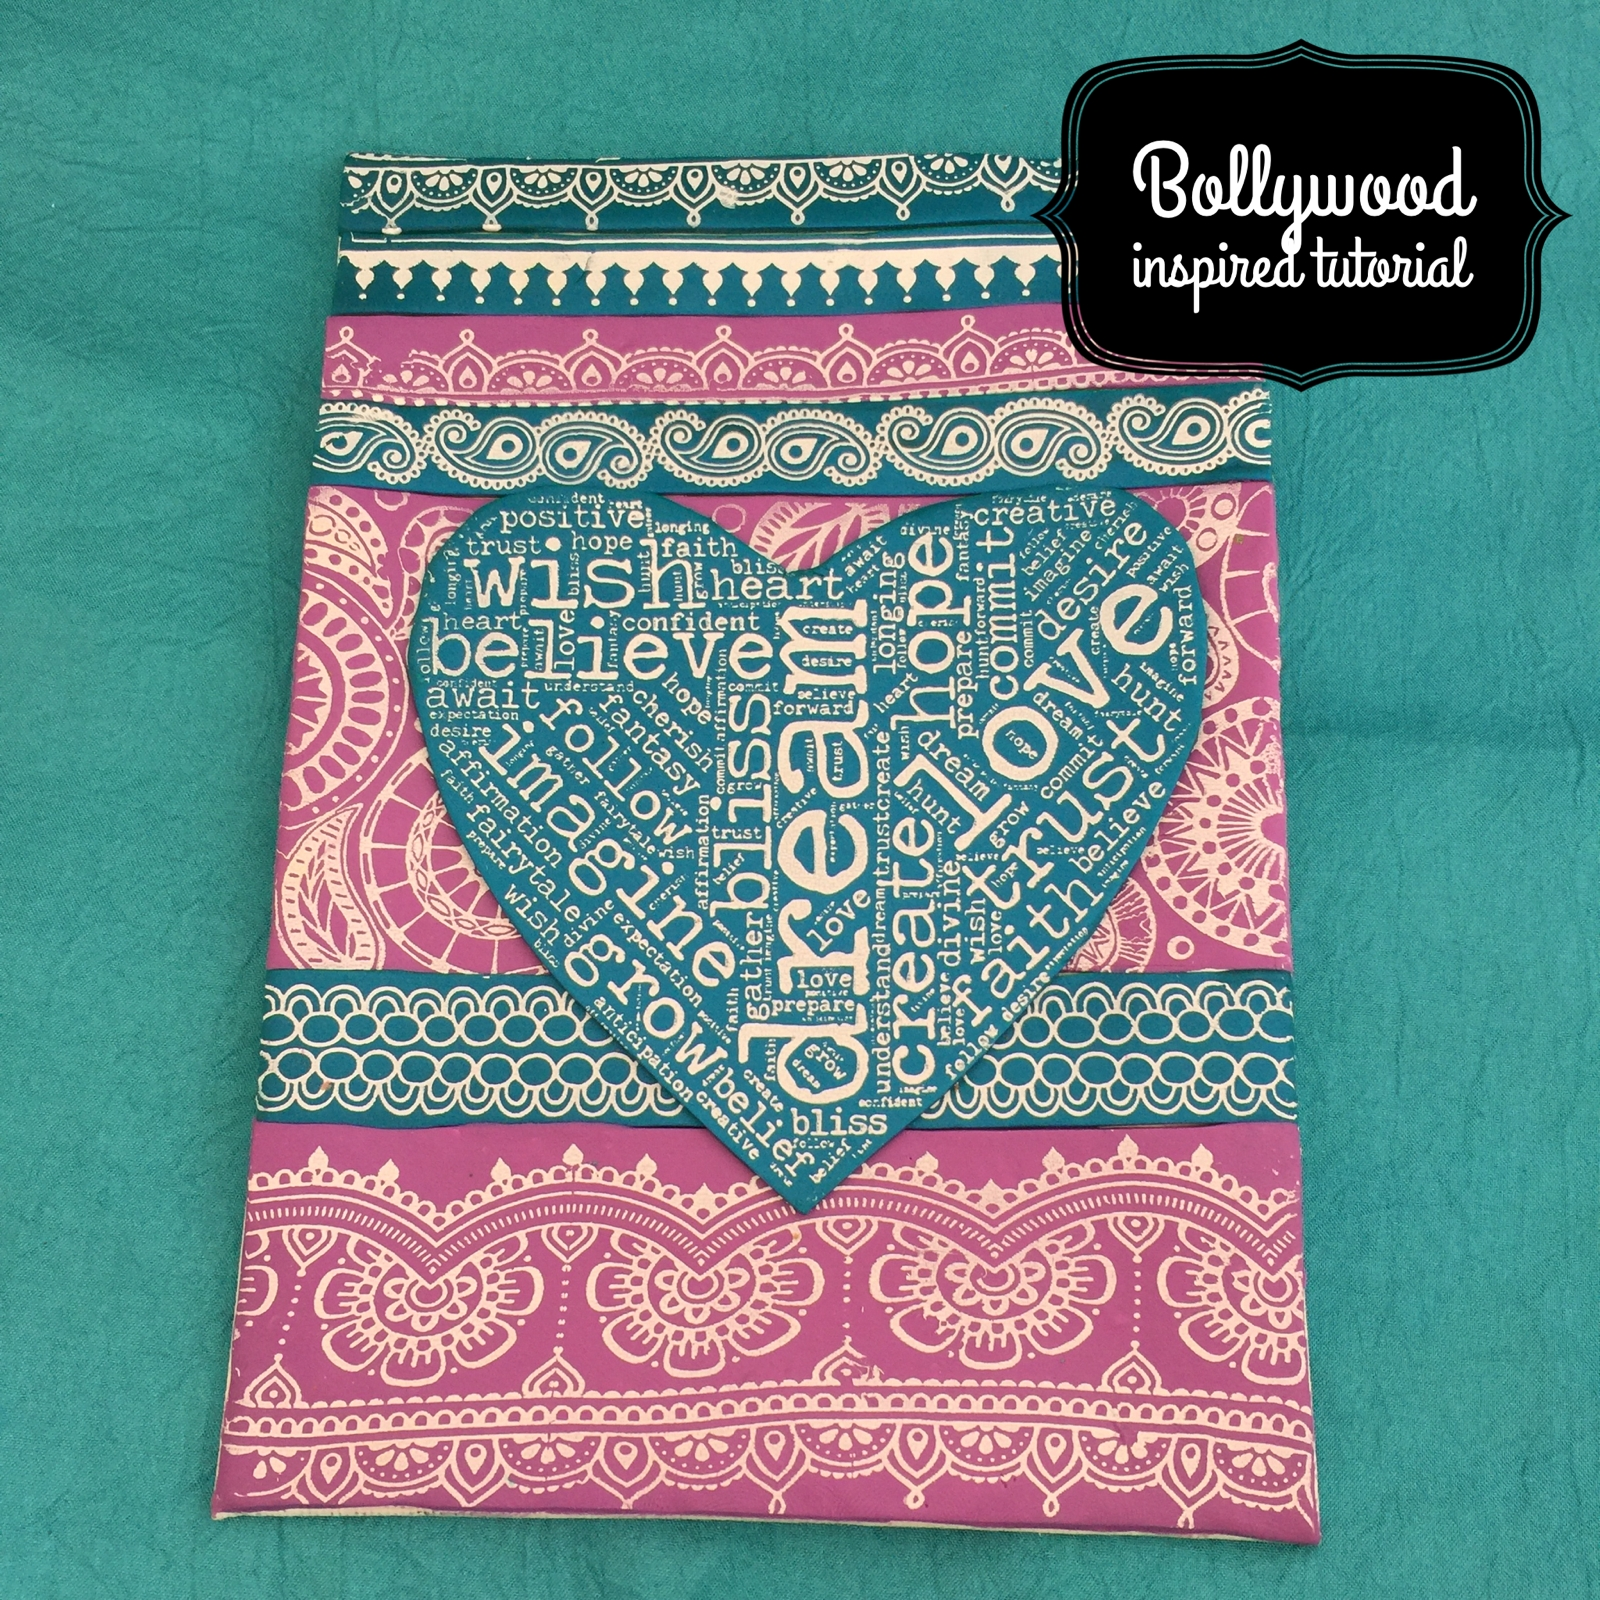 Polymer Clay Tv & Polymer Clay Productions: Bollywood Inspired For Latest Polymer Clay Wall Art (View 14 of 20)